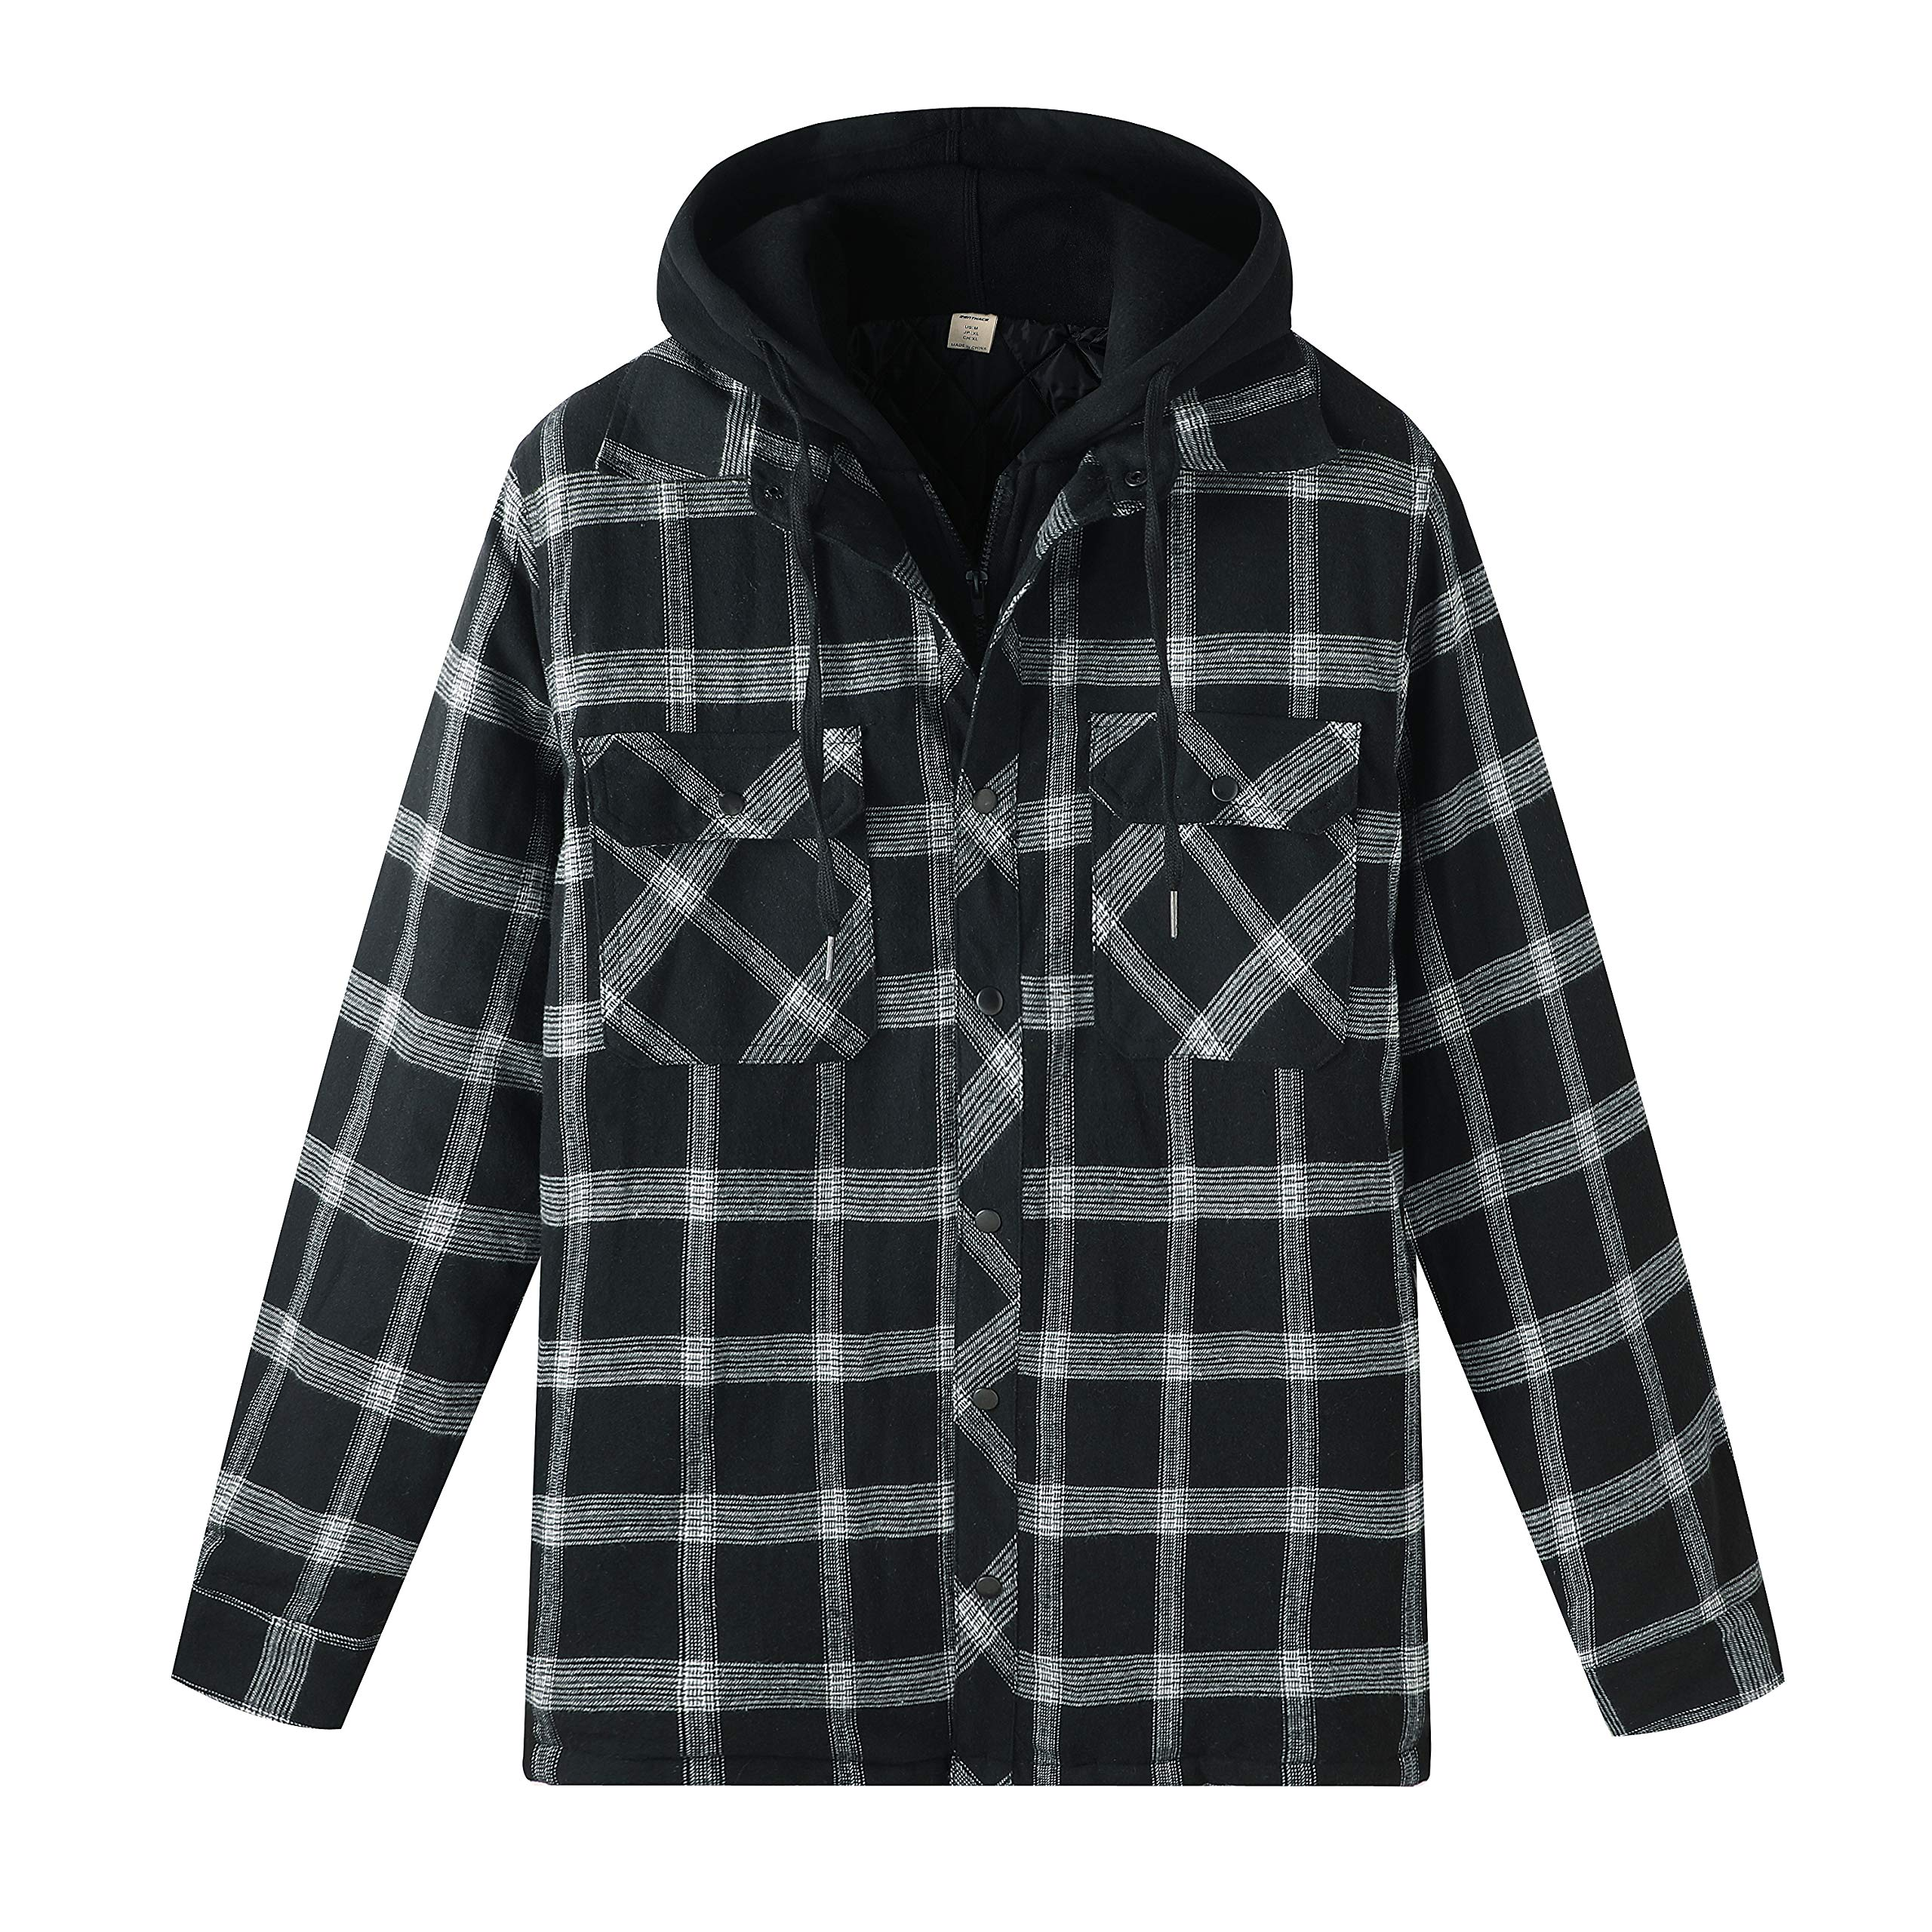 ZENTHACE Men's Thicken Plaid Hooded Flannel Shirt Jacket with Quilted Lined Black M by ZENTHACE